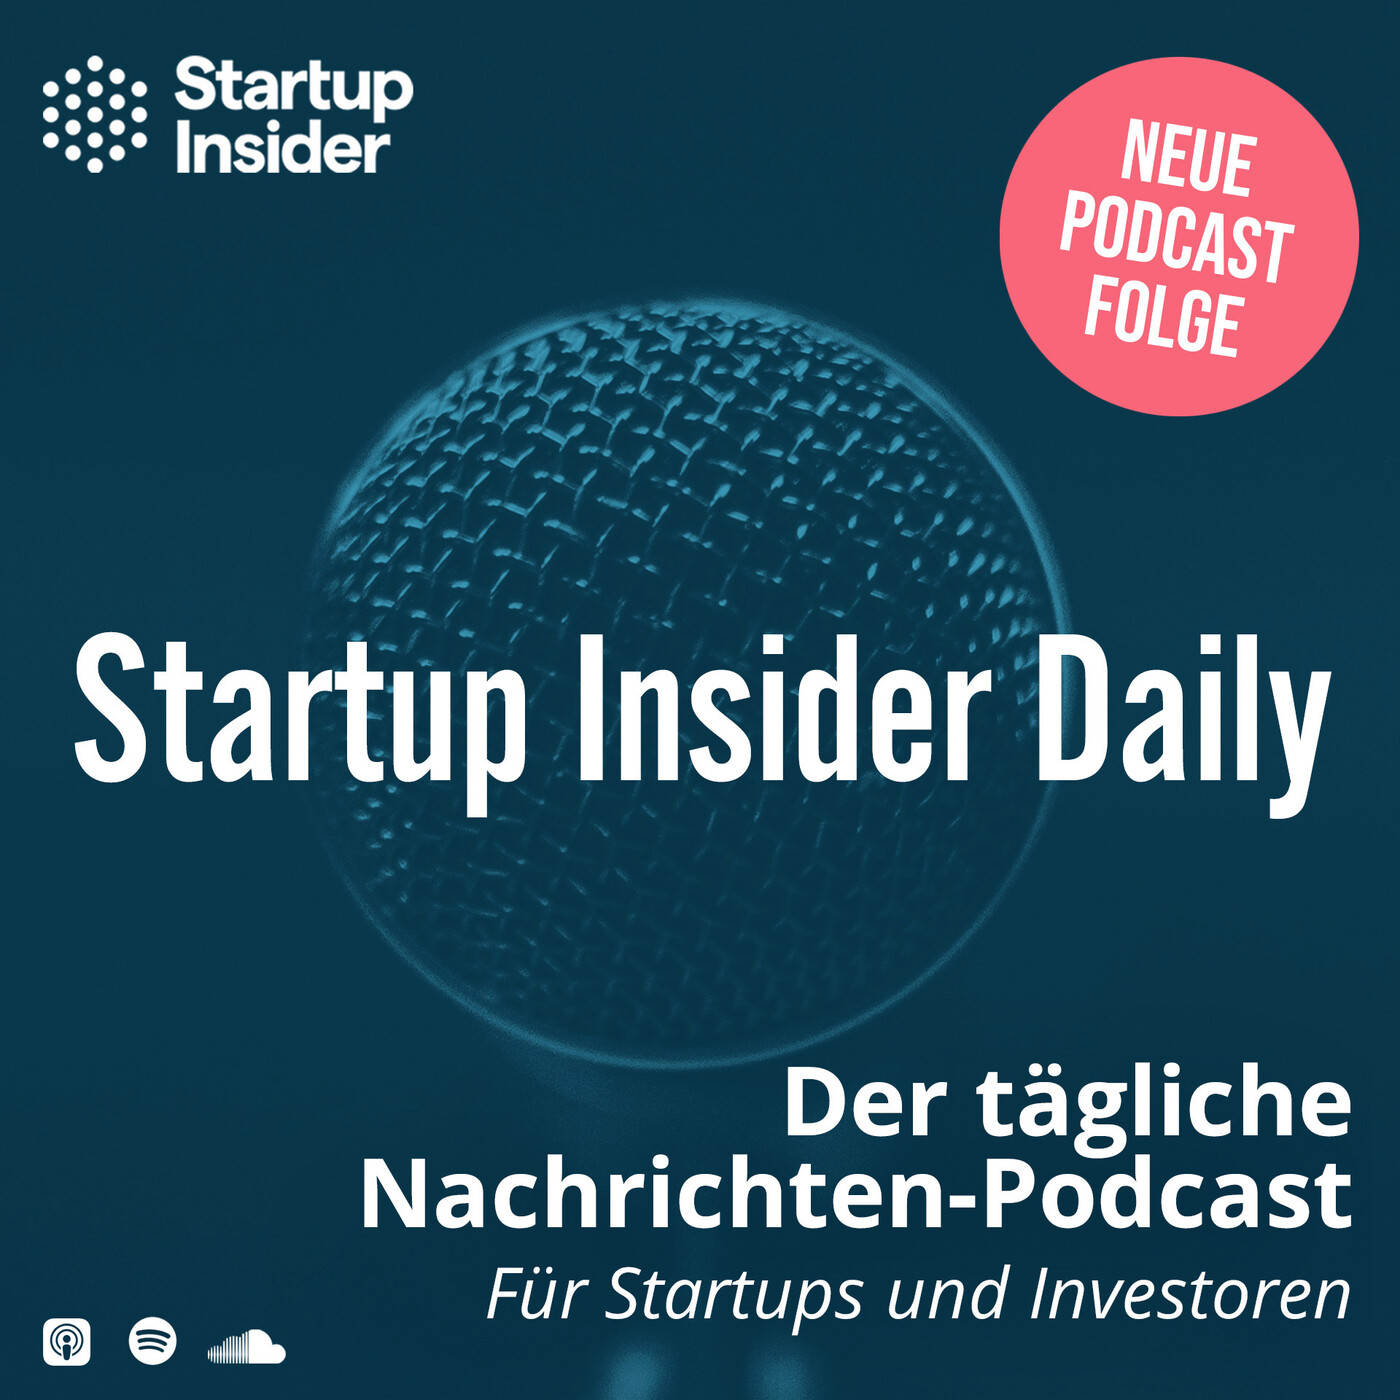 Startup Insider Daily • Sirplus • Vay • Accure • Coinbase